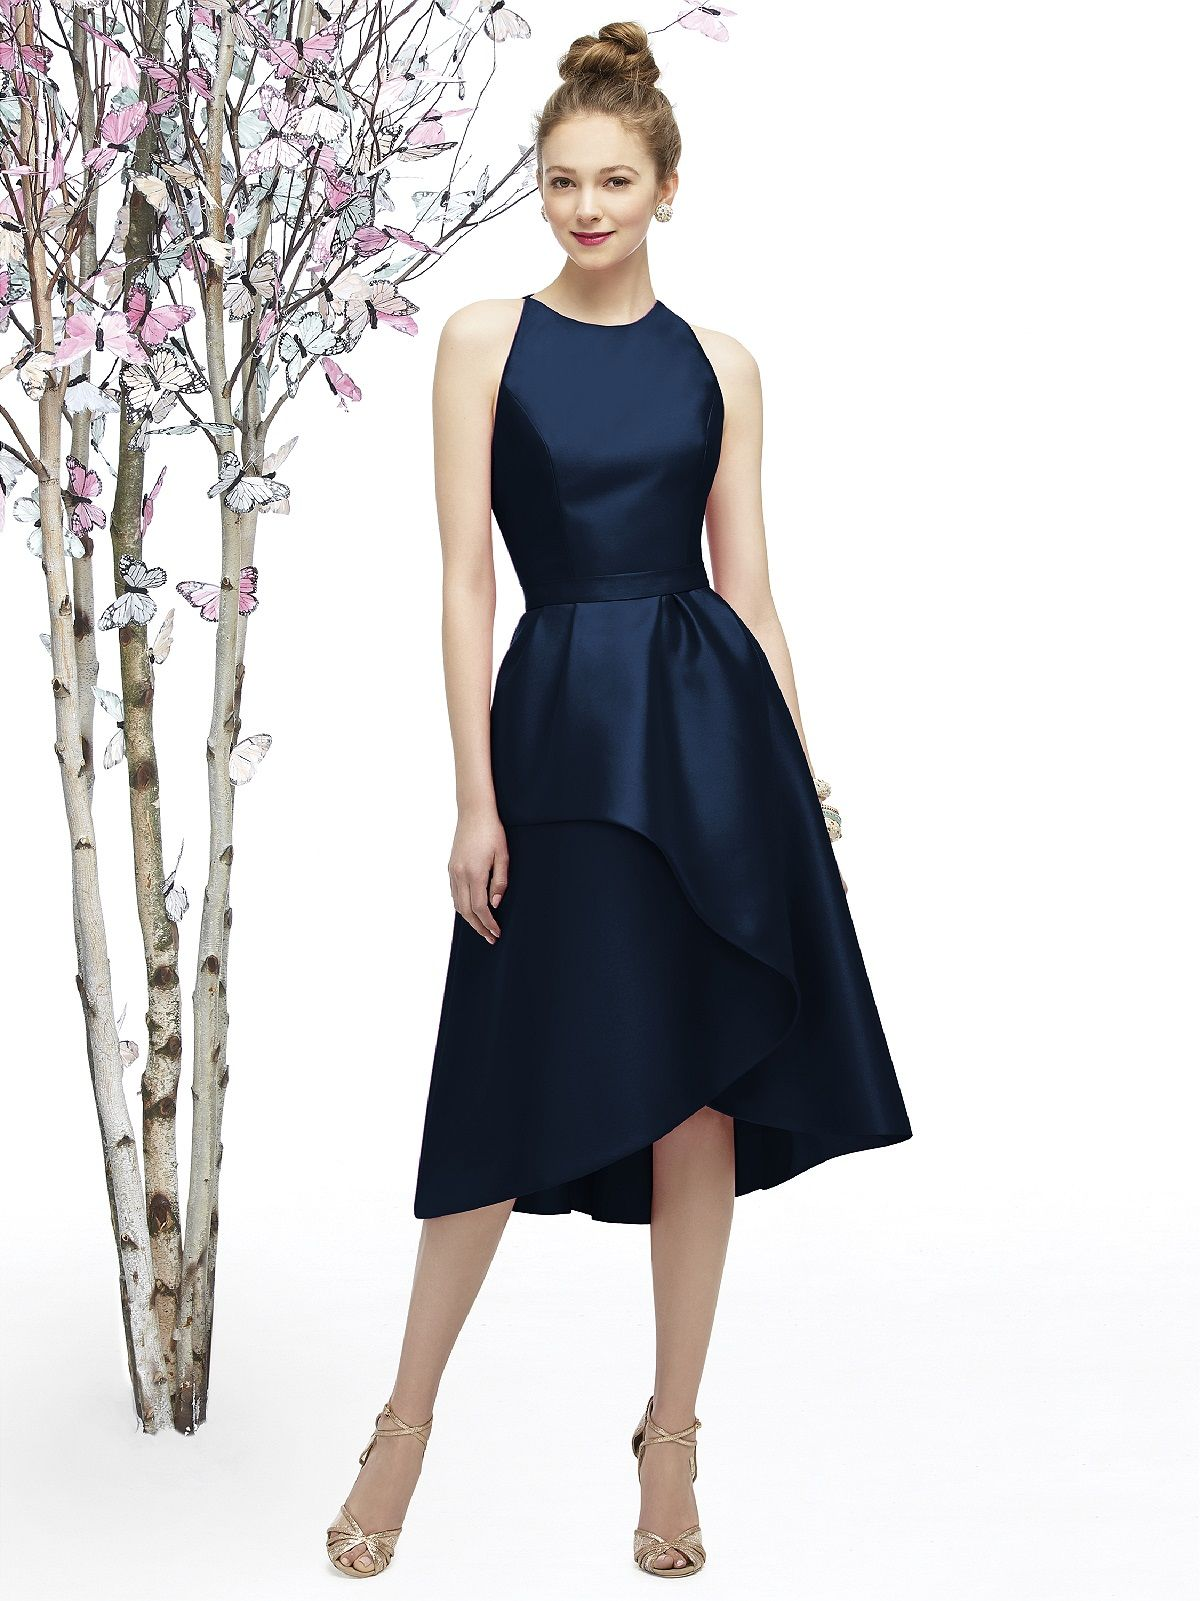 Lela rose lr bridesmaid dress in navy blue the big day